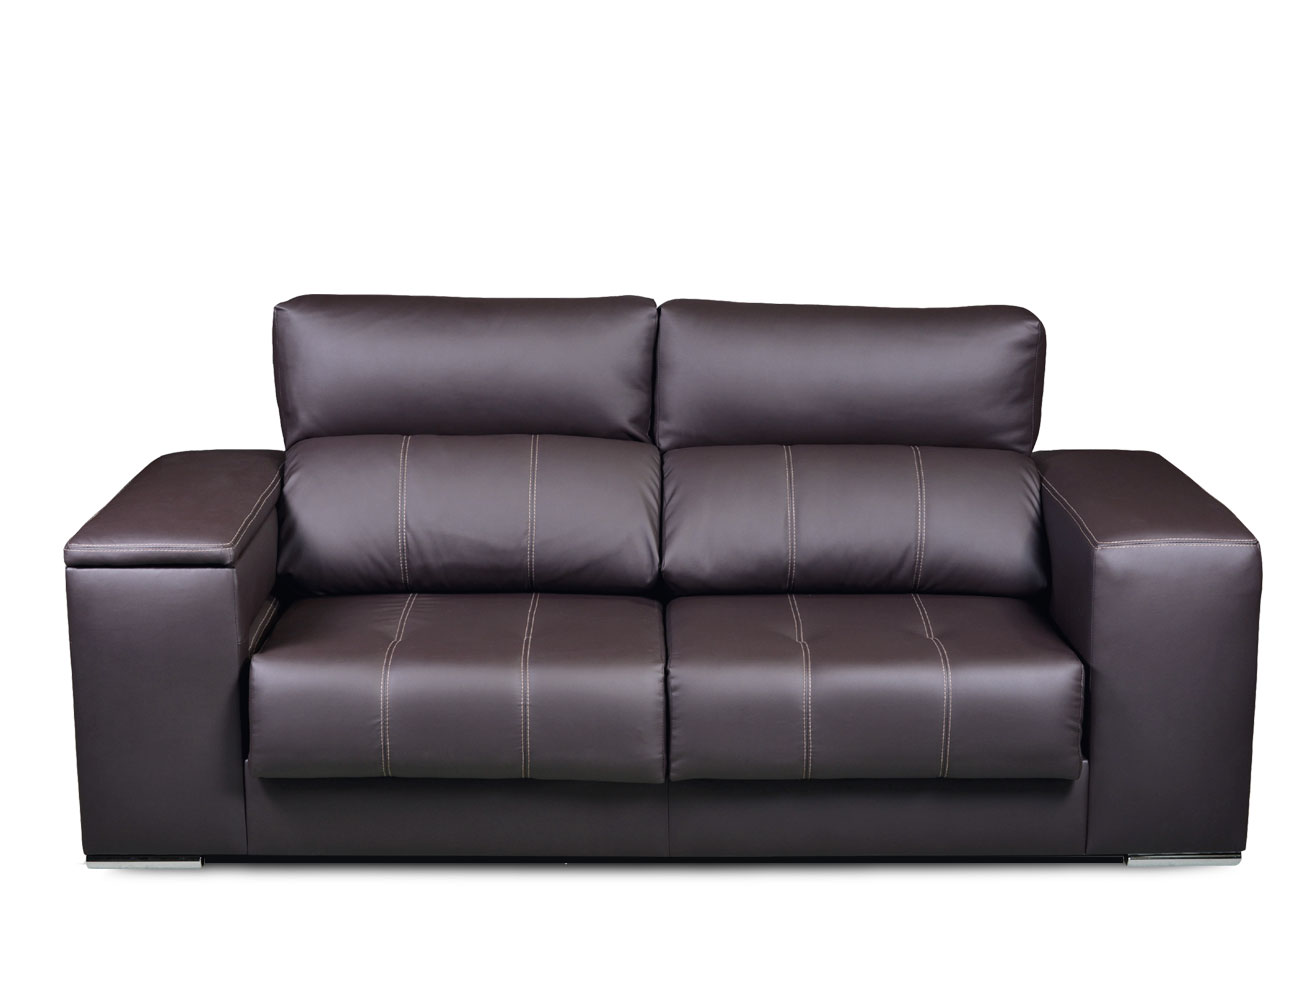 Sofa 3 plazas polipiel arcon taburete 1